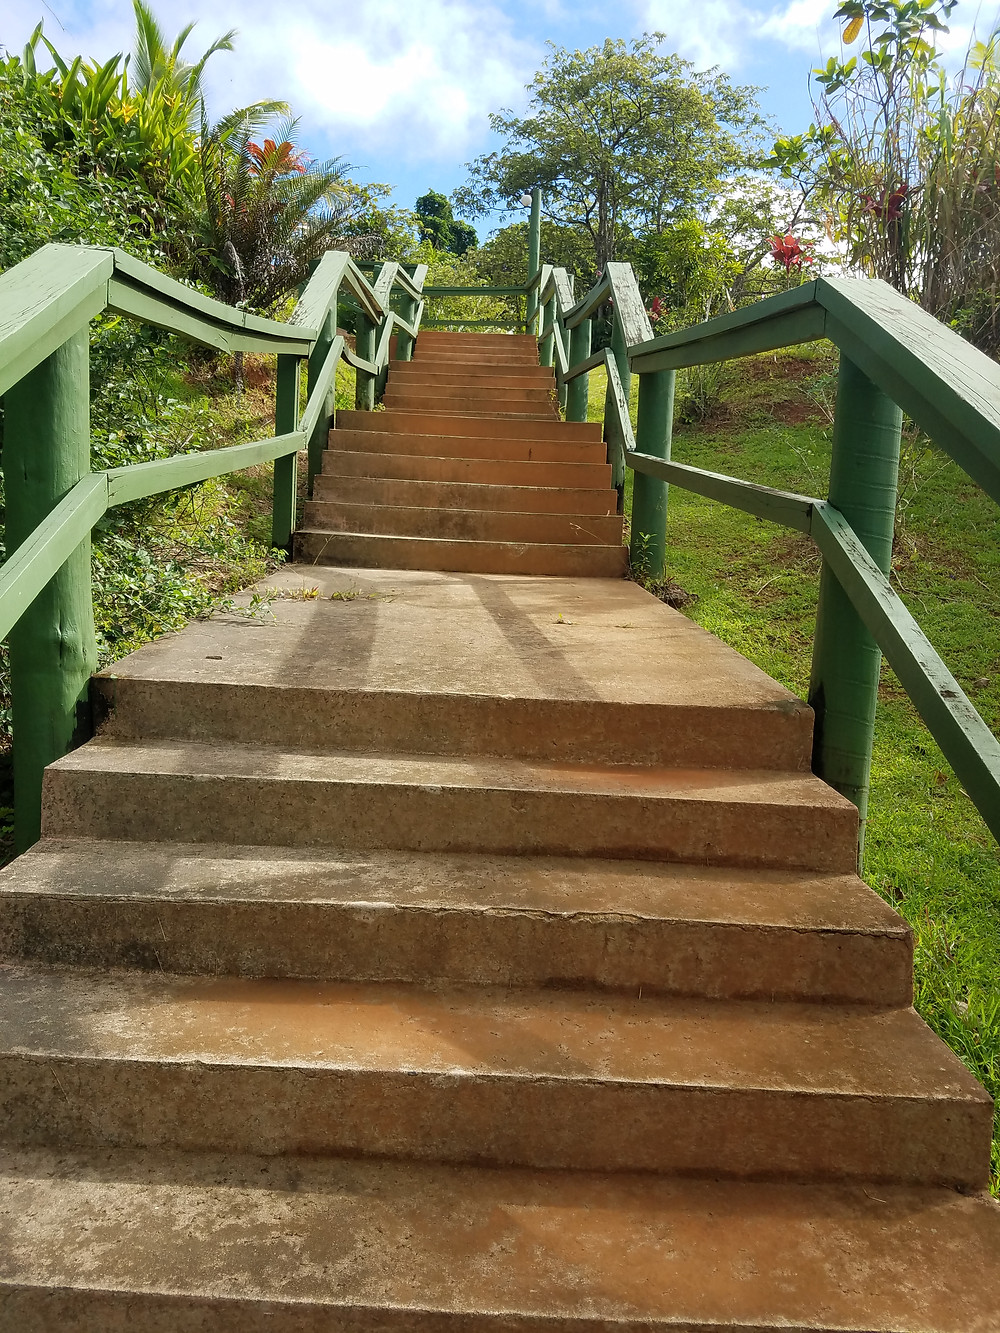 Scenic stairs at Waidroka Bay Resort, Fiji